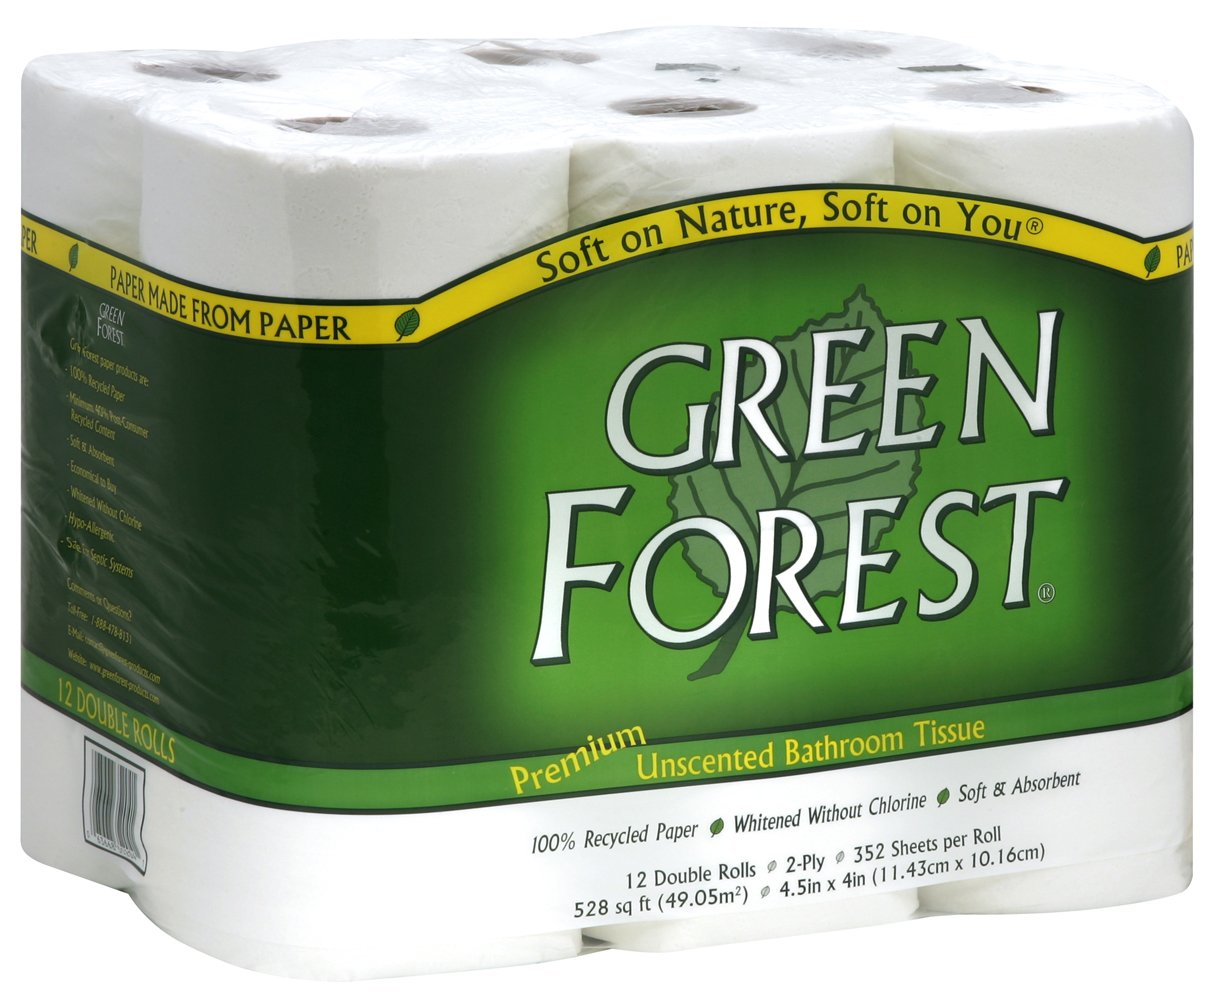 Green Forest Premium 100% Recycled Bathroom Tissue, 352 Sheets Each Roll, 12 Count (Pack of 4) by GreenForest